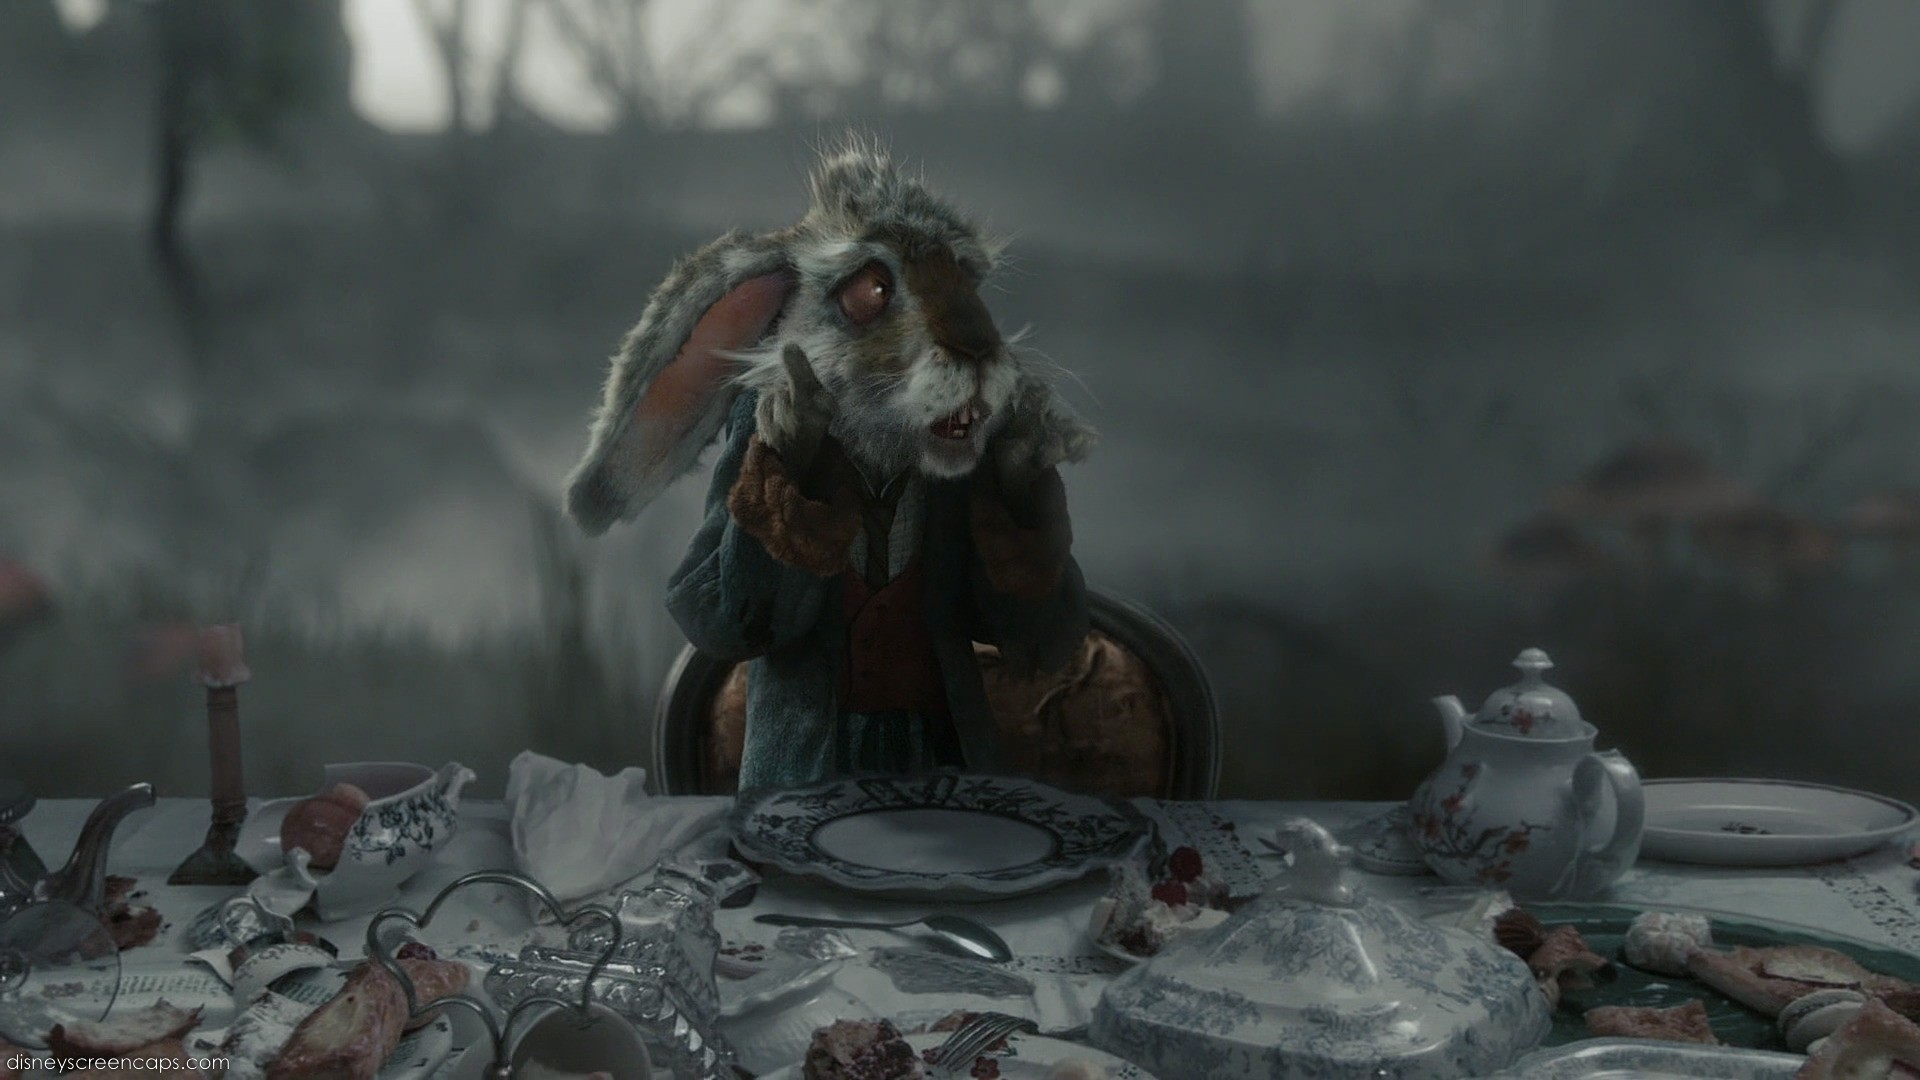 1920x1080 Alice in wonderland rabbit tim burton wallpaper - photo#26